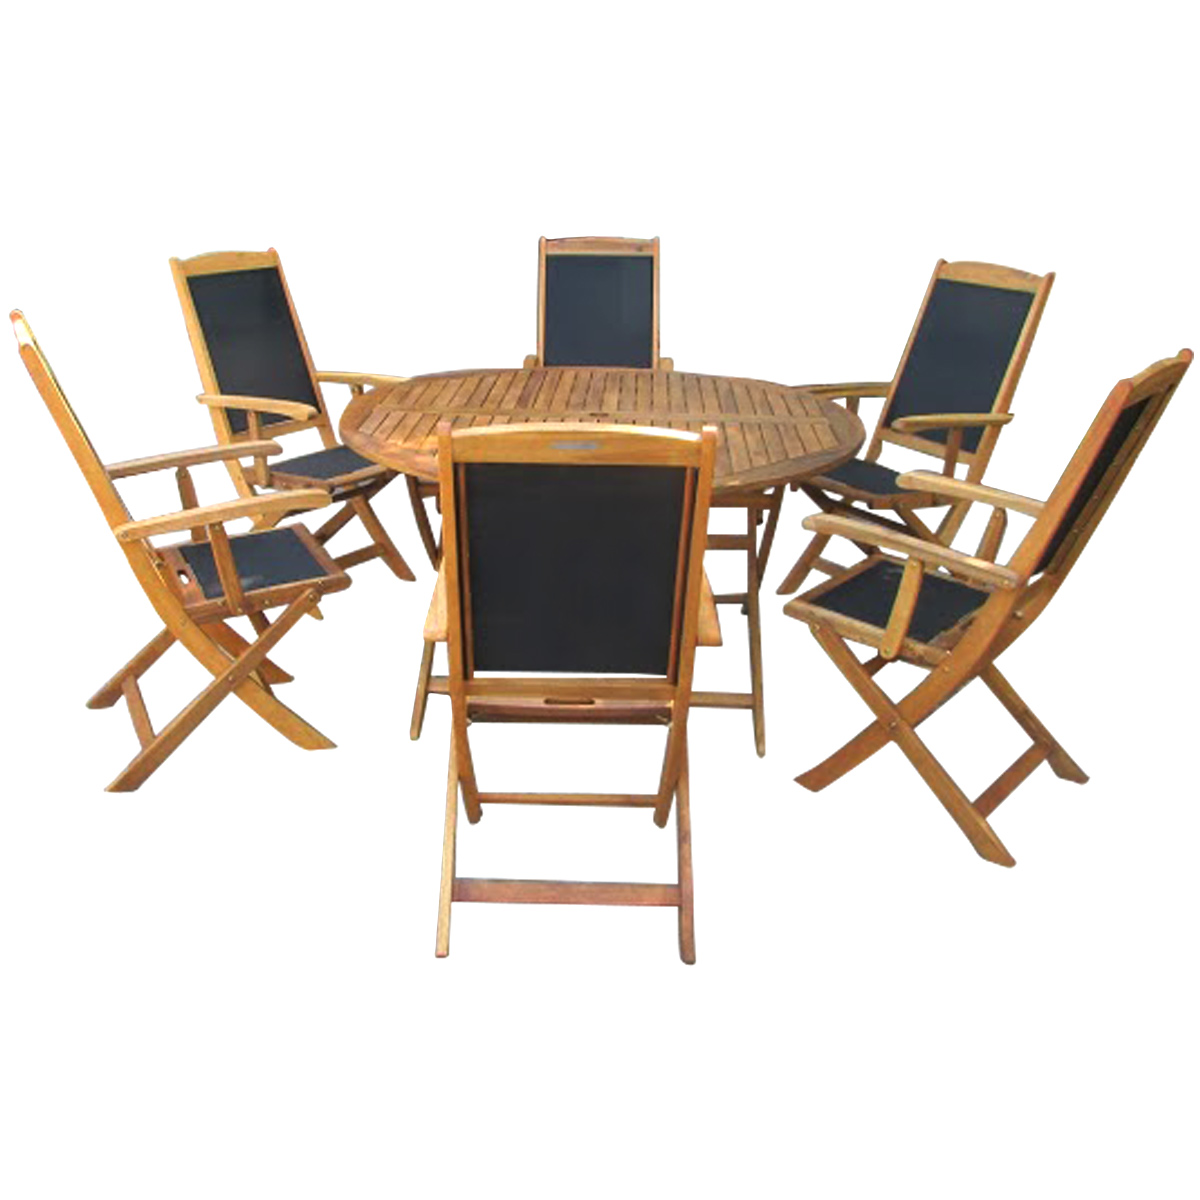 Phenomenal 6 Seater Folding Wooden Table And Chairs Pdpeps Interior Chair Design Pdpepsorg